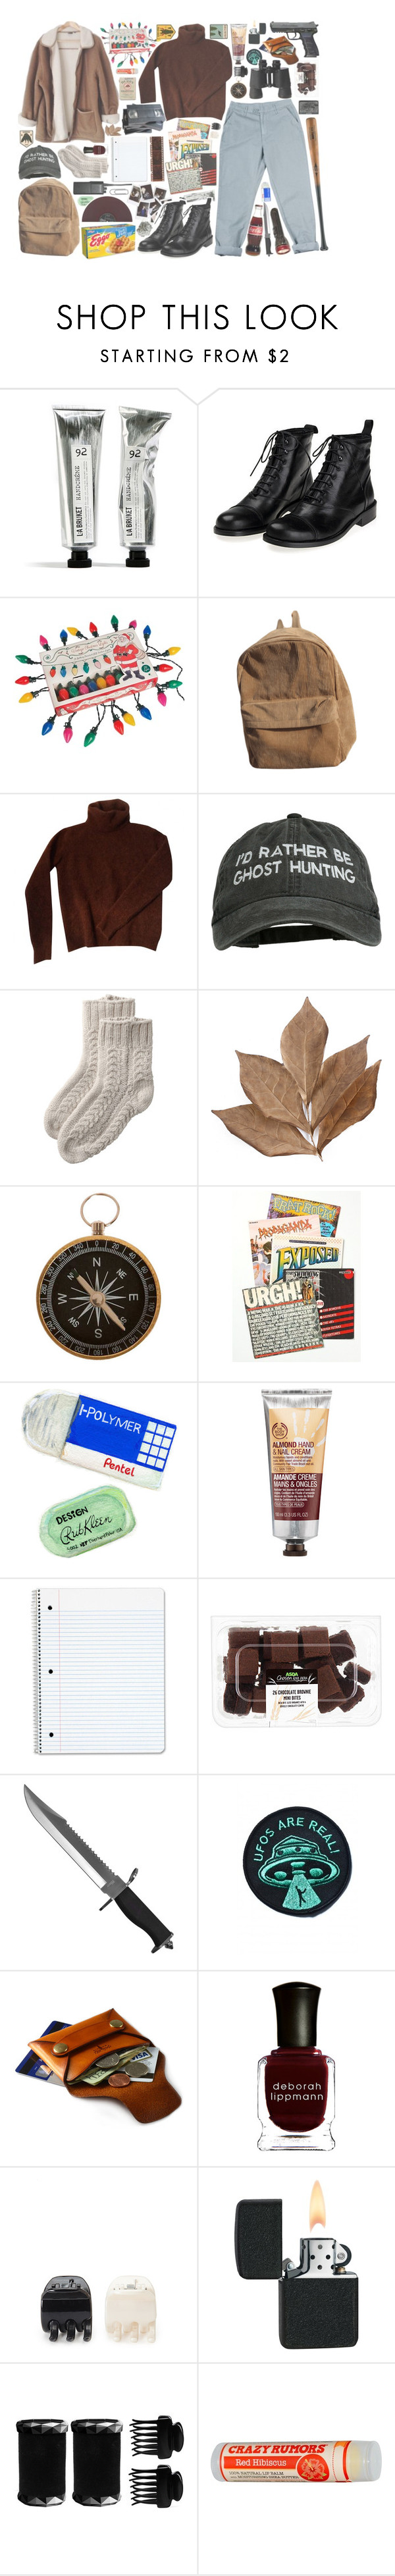 """""""☾ I tried to warn you just to stay away ☽"""" by etoilesdanse ❤ liked on Polyvore featuring Nasty Gal, Monki, Fendi, Toast, Bliss Studio, Clips, Free People, Pentel, The Body Shop and Whetstone Cutlery"""